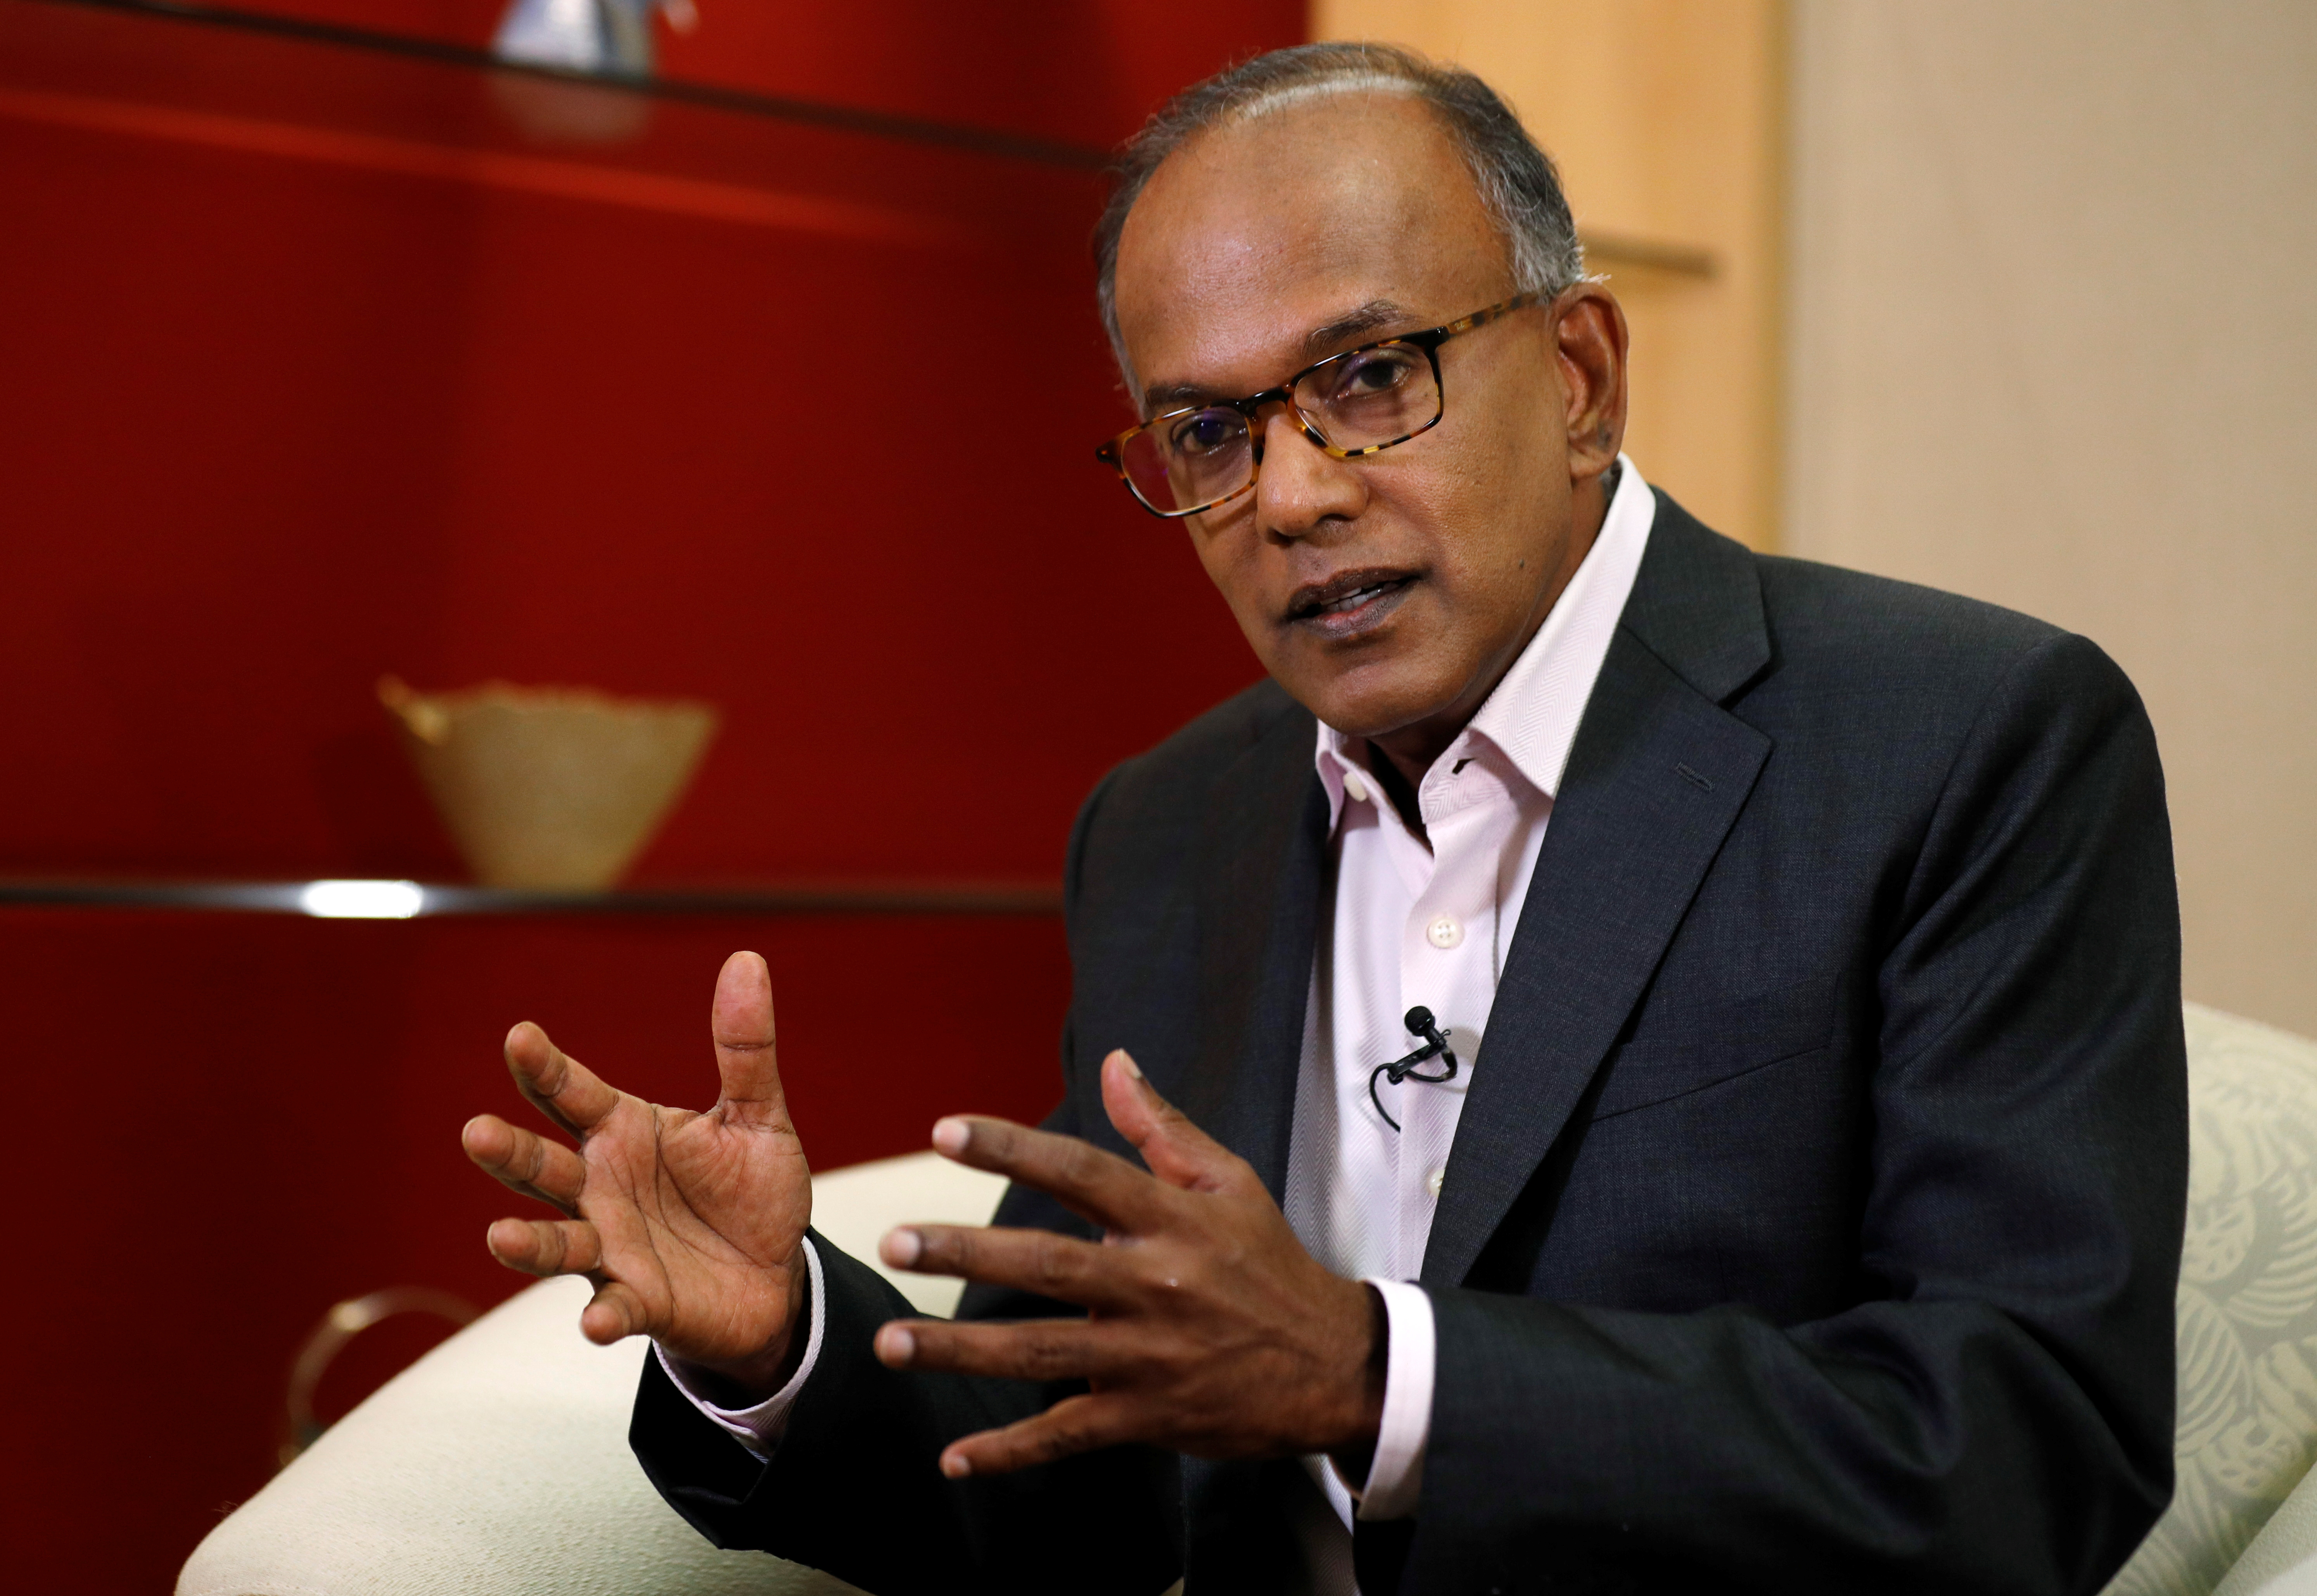 Singapore's Law Minister K. Shanmugam speaks to Reuters in Singapore July 31, 2019.  REUTERS/Edgar Su